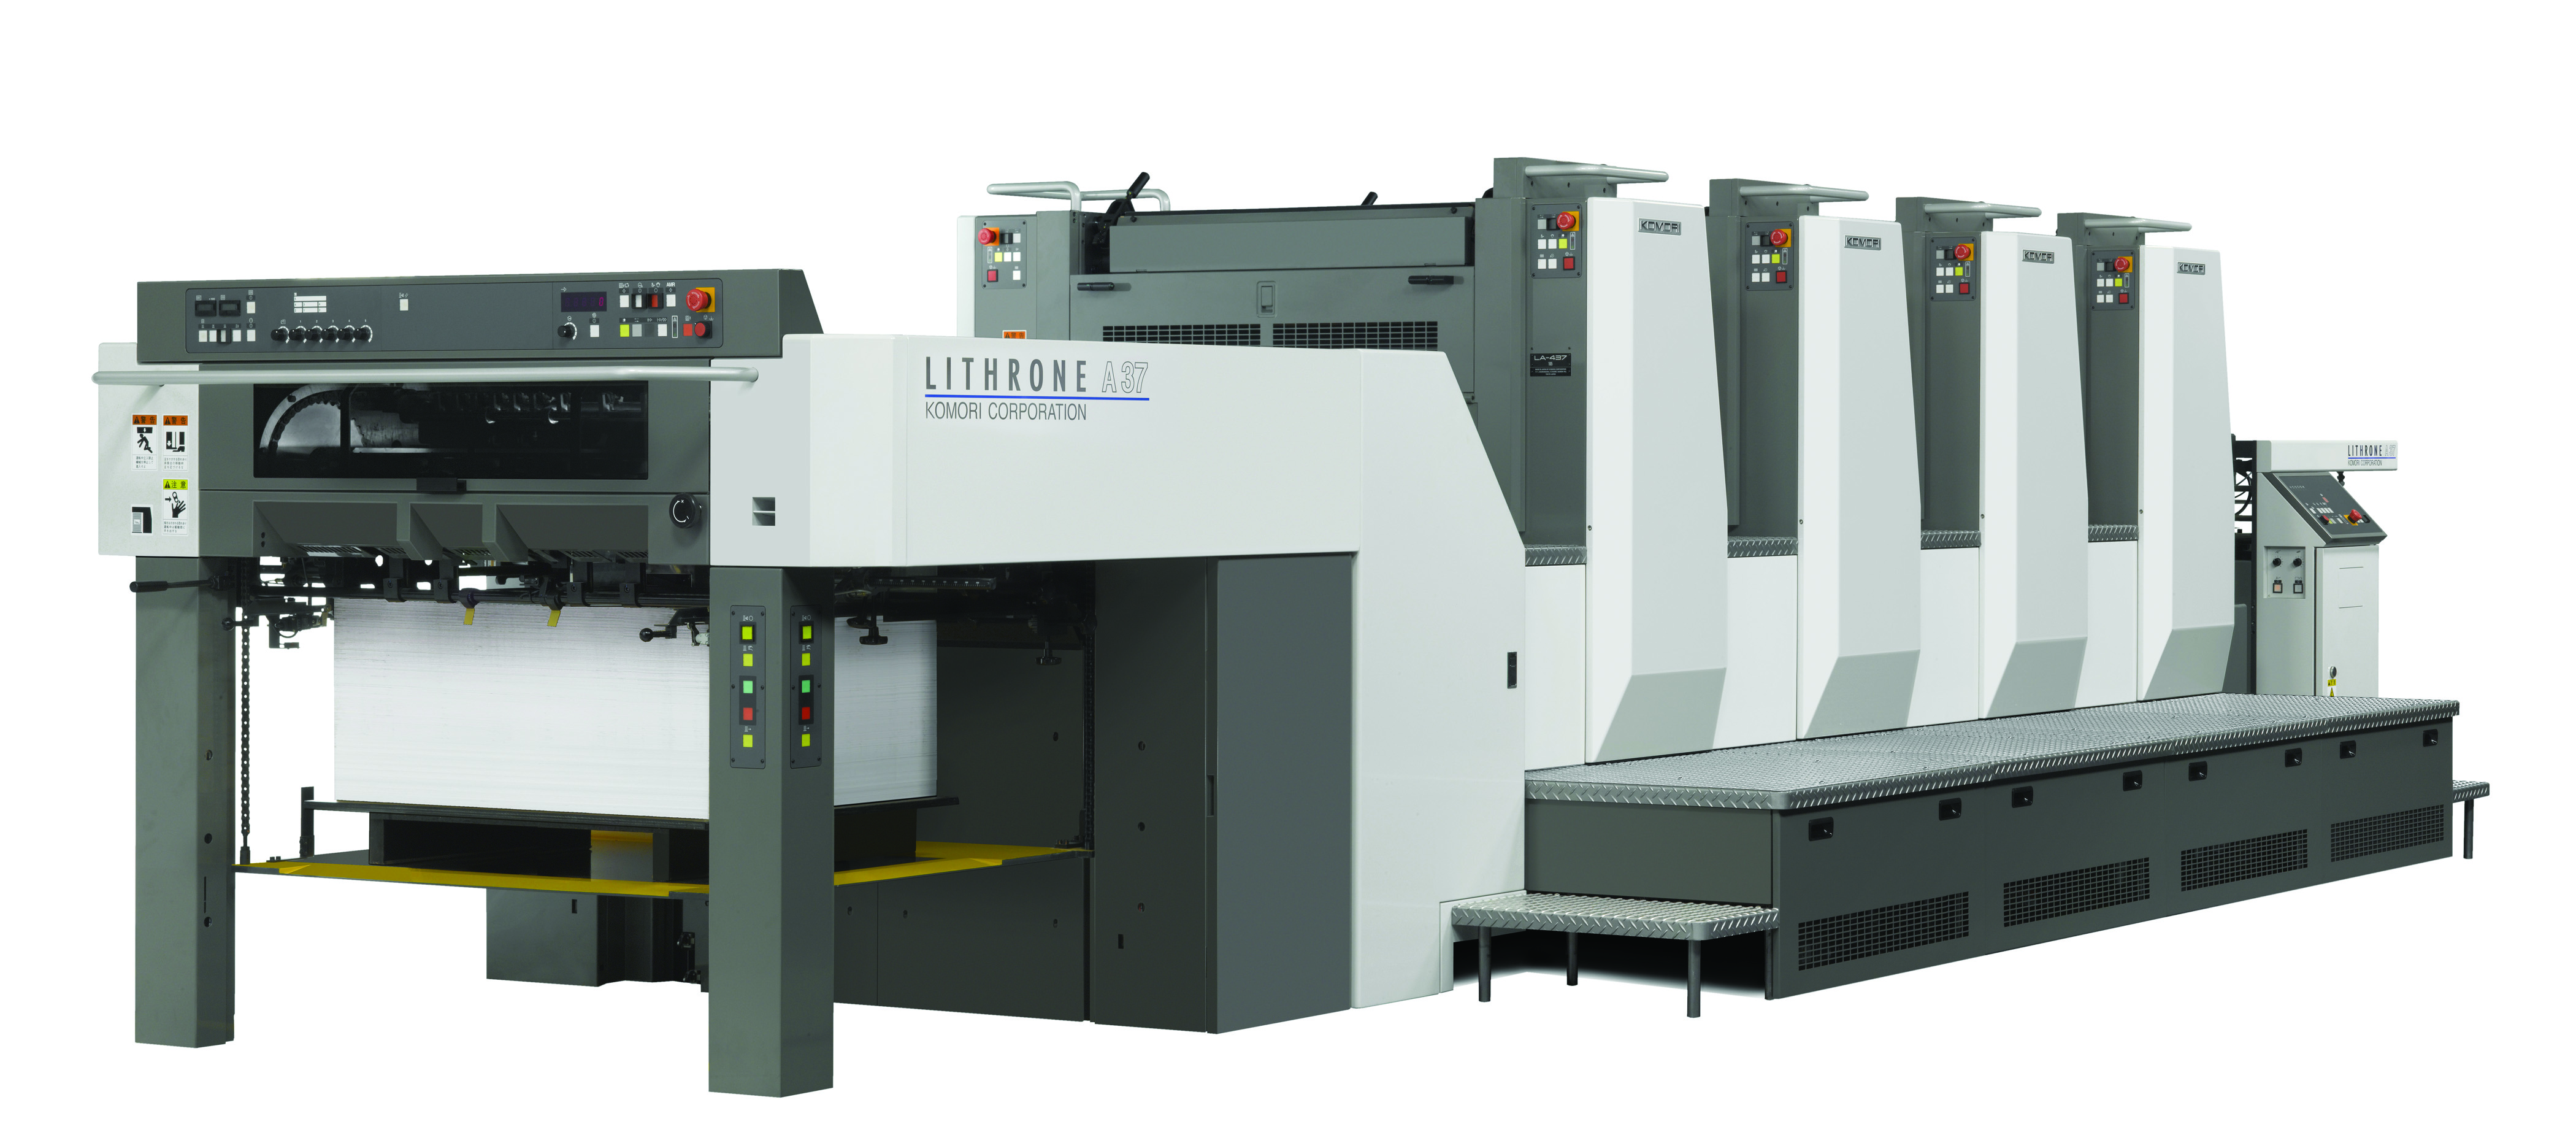 Komori Lithrone A37 was showcased in Drupa 2012, first time.